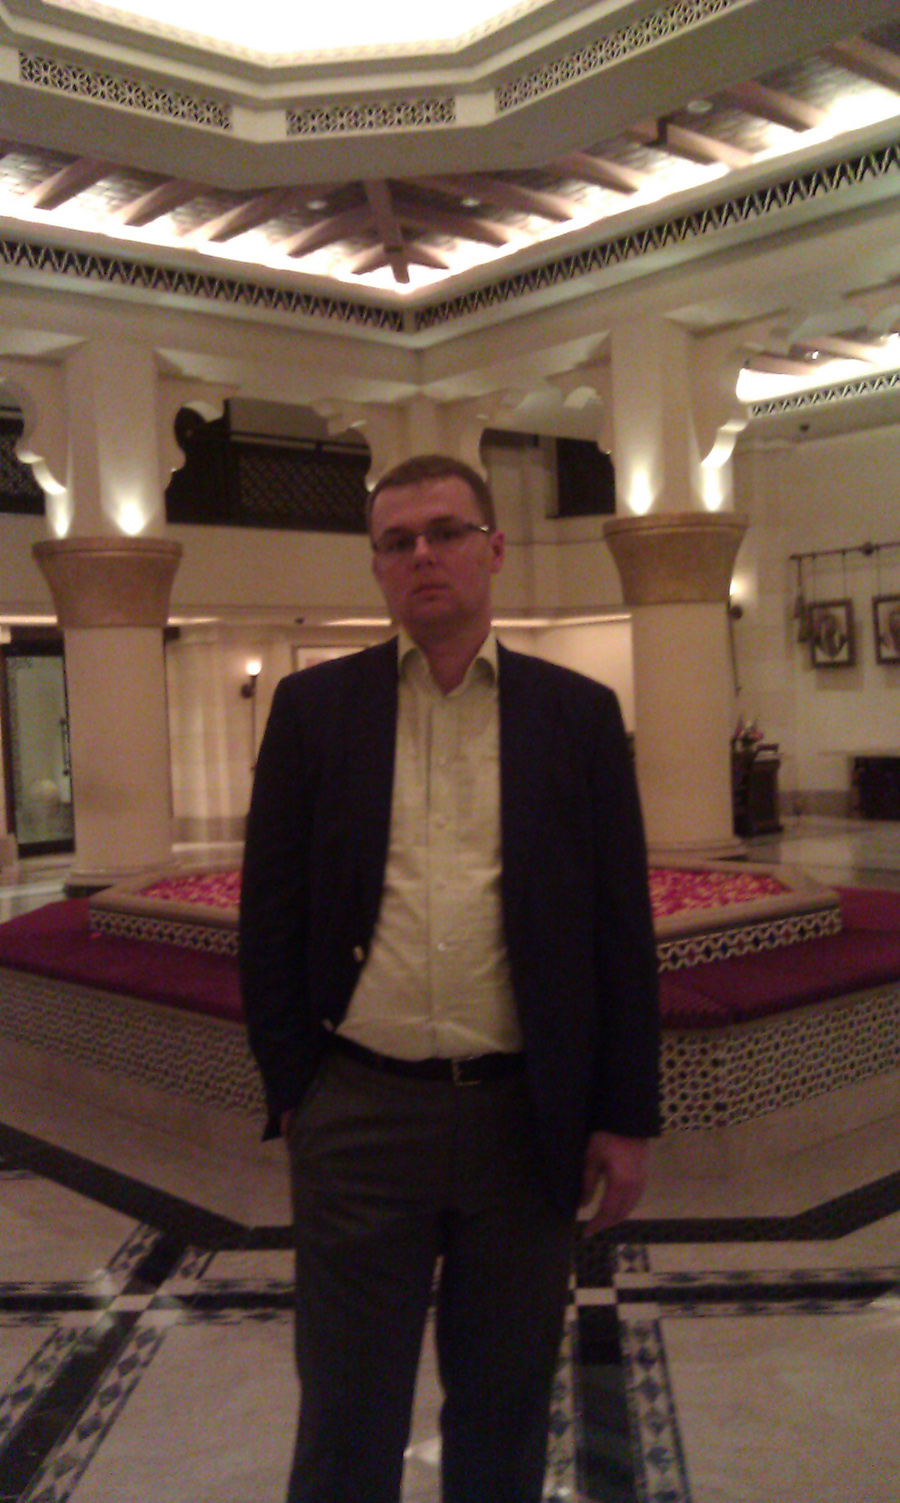 AHCII chairman Lucas Luniewski in a beautiful hotel in Dubai. A fountain full of roses in the middle looks and smells the way that is difficult to express in words.